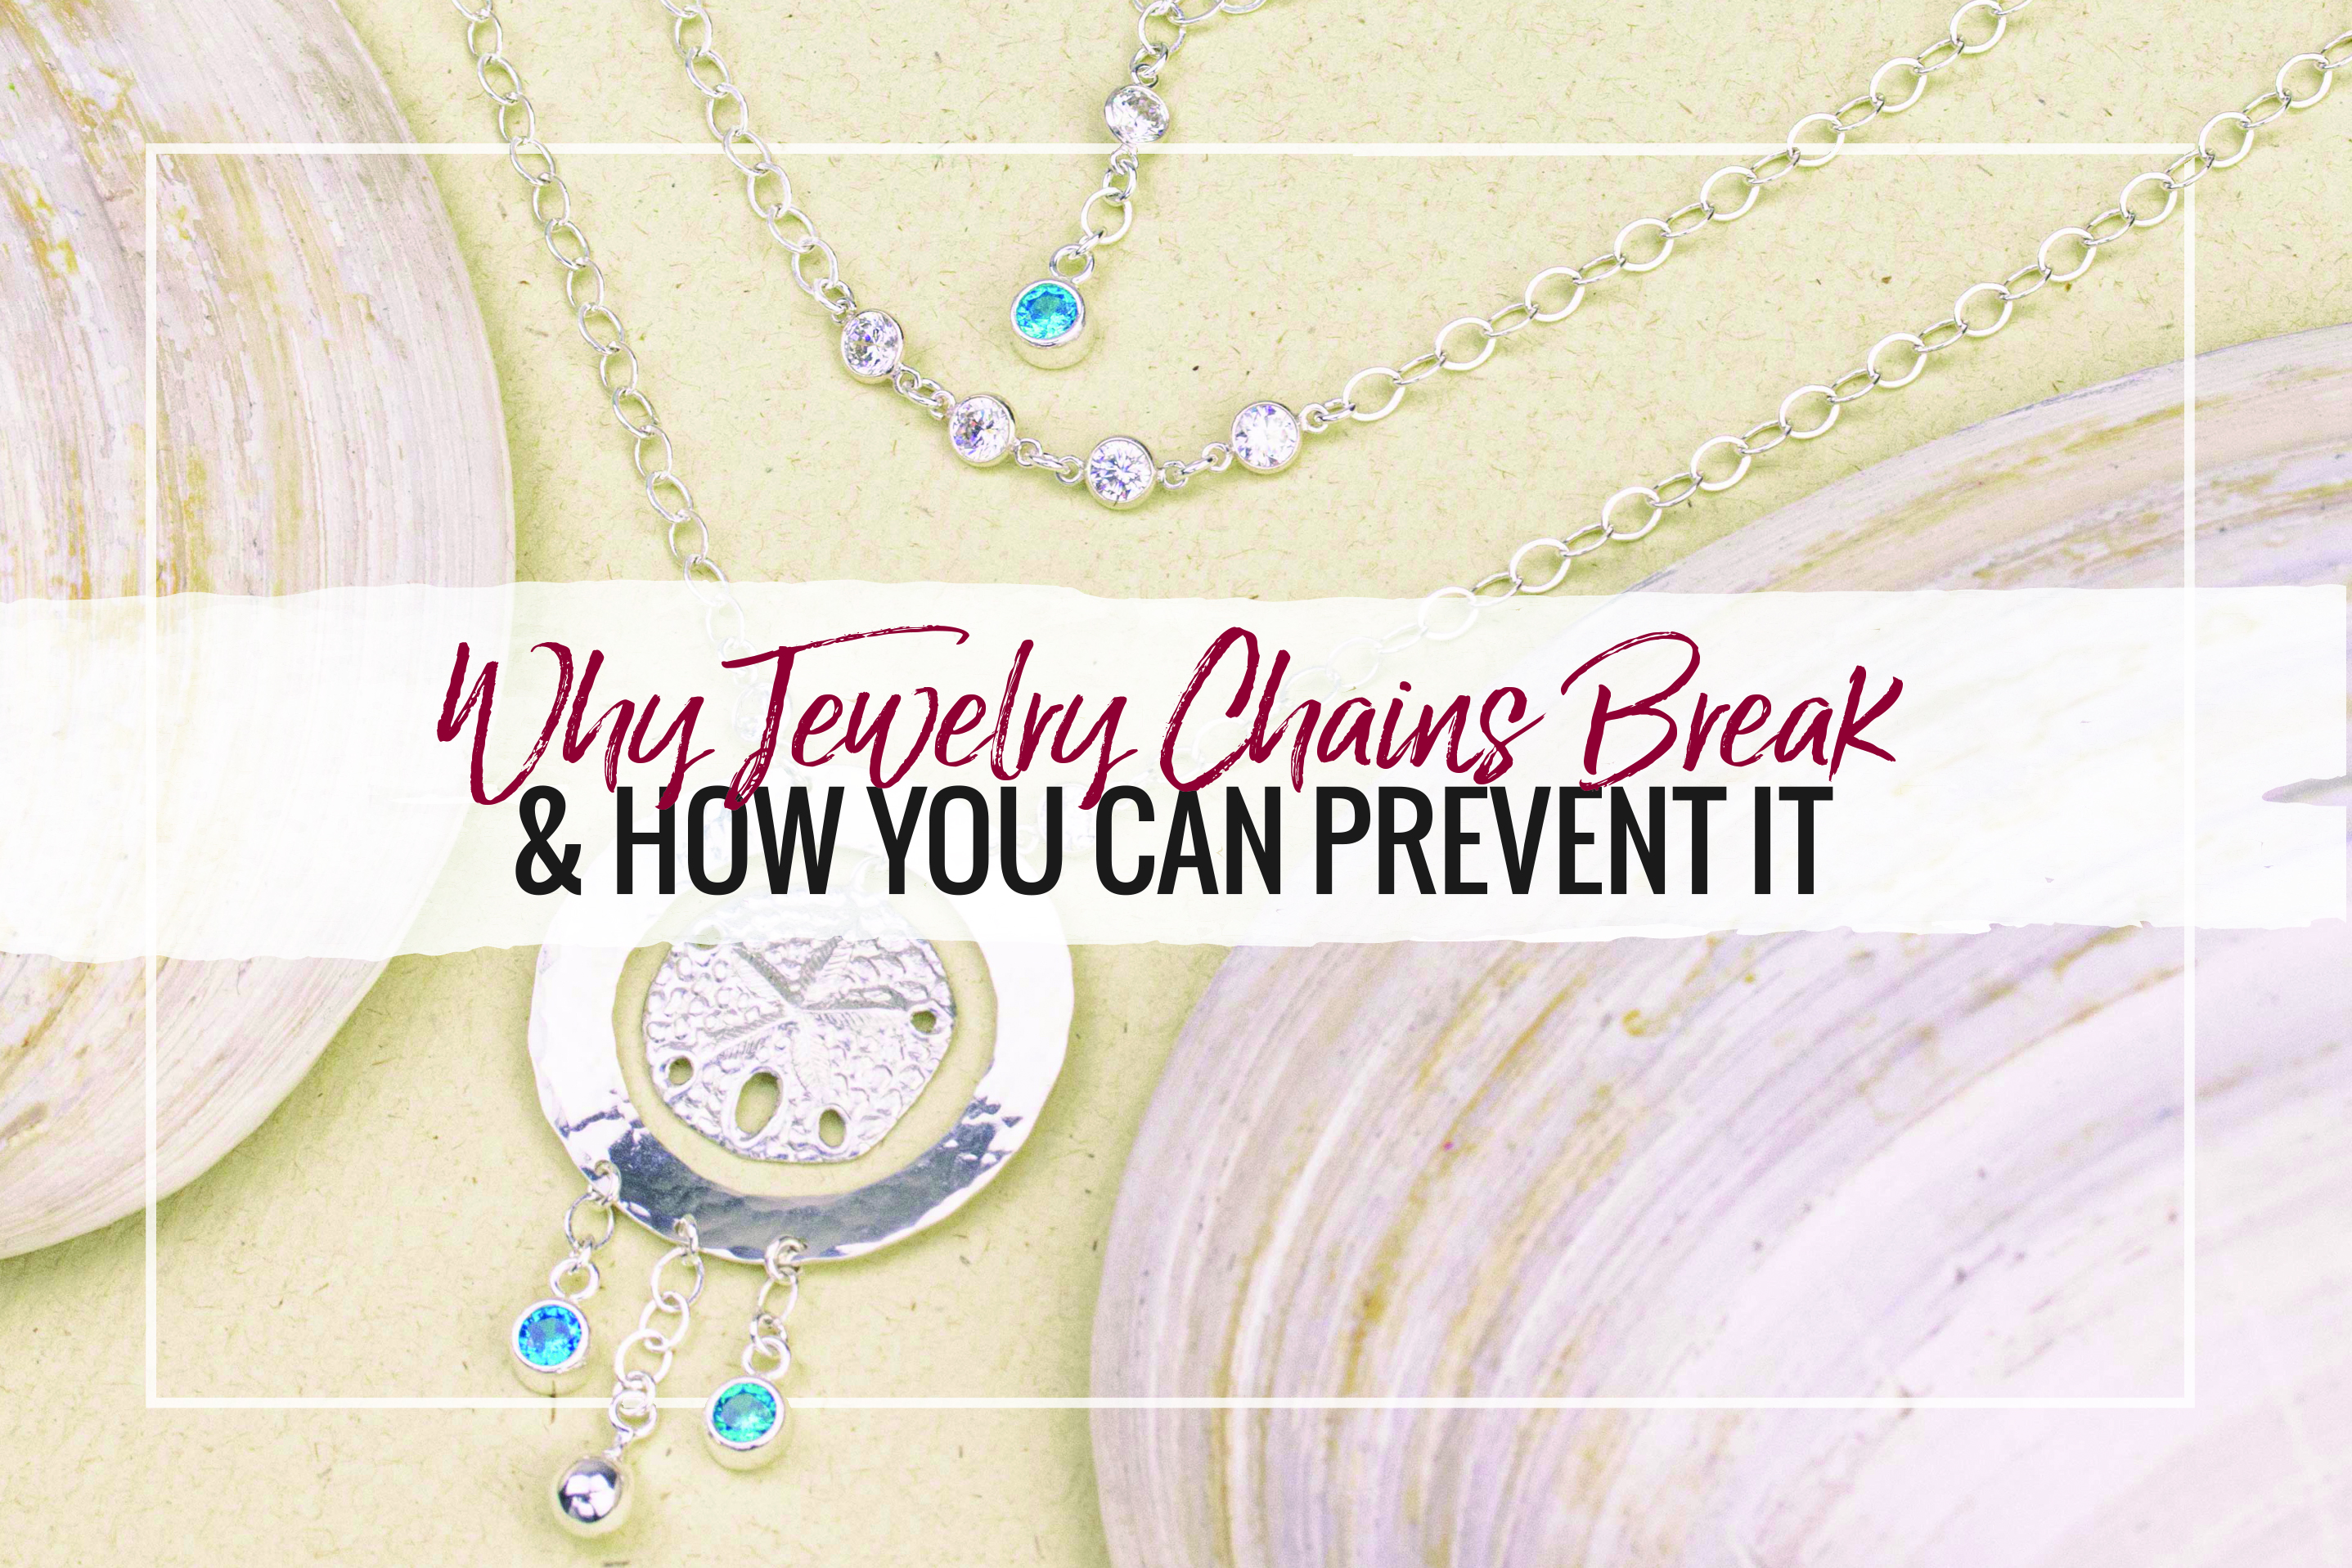 Why jewelry chains break & how can you prevent it from happening? Read for helpful tips & tricks on preventing jewelry chain from breaking.